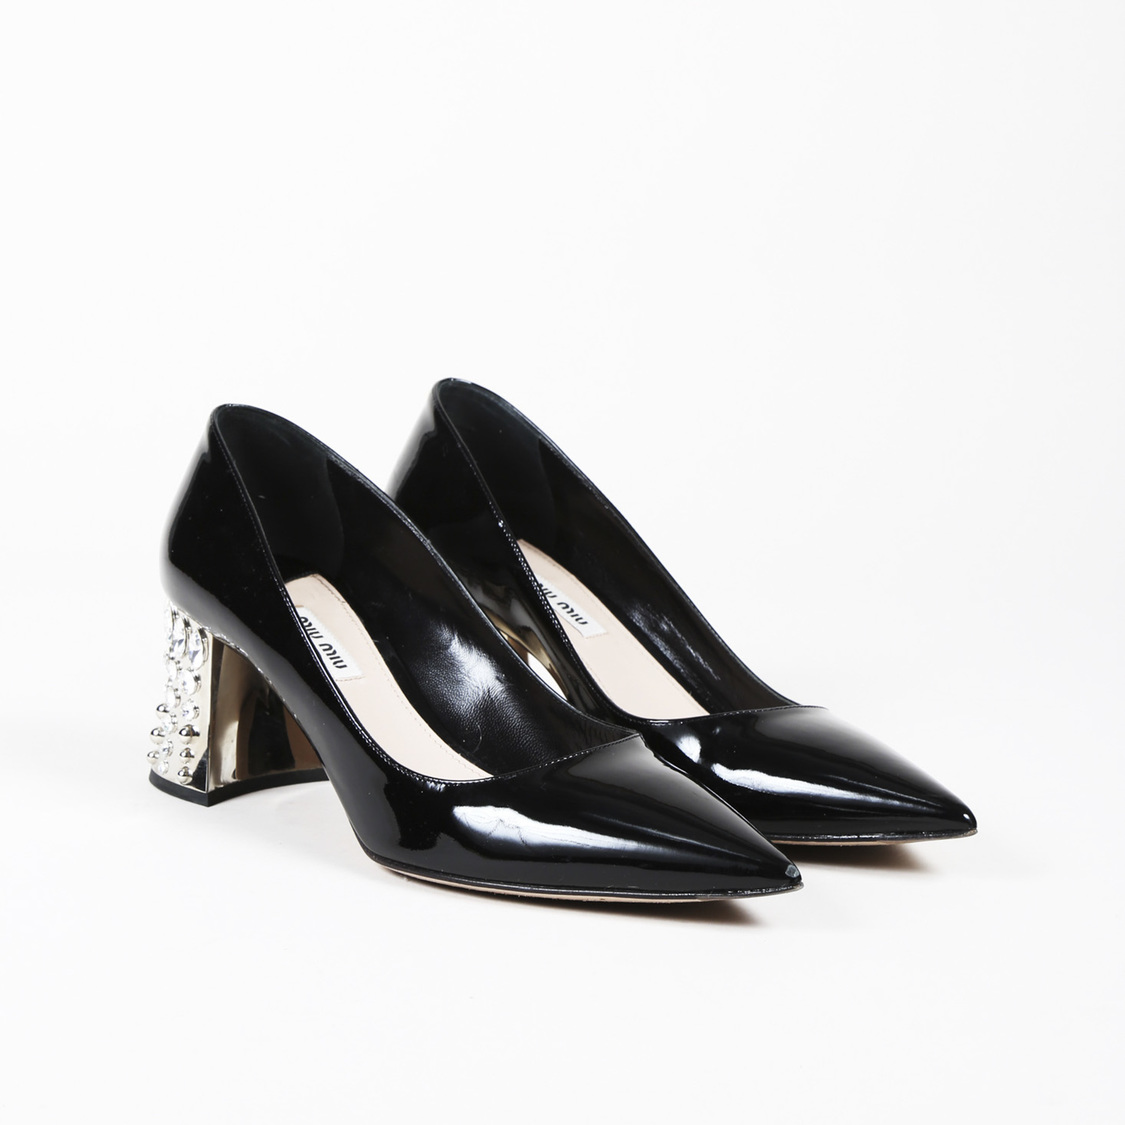 5631bffb8c9 Details about Miu Miu Black Patent Leather Embellished Heel Pointed Pumps  SZ 39